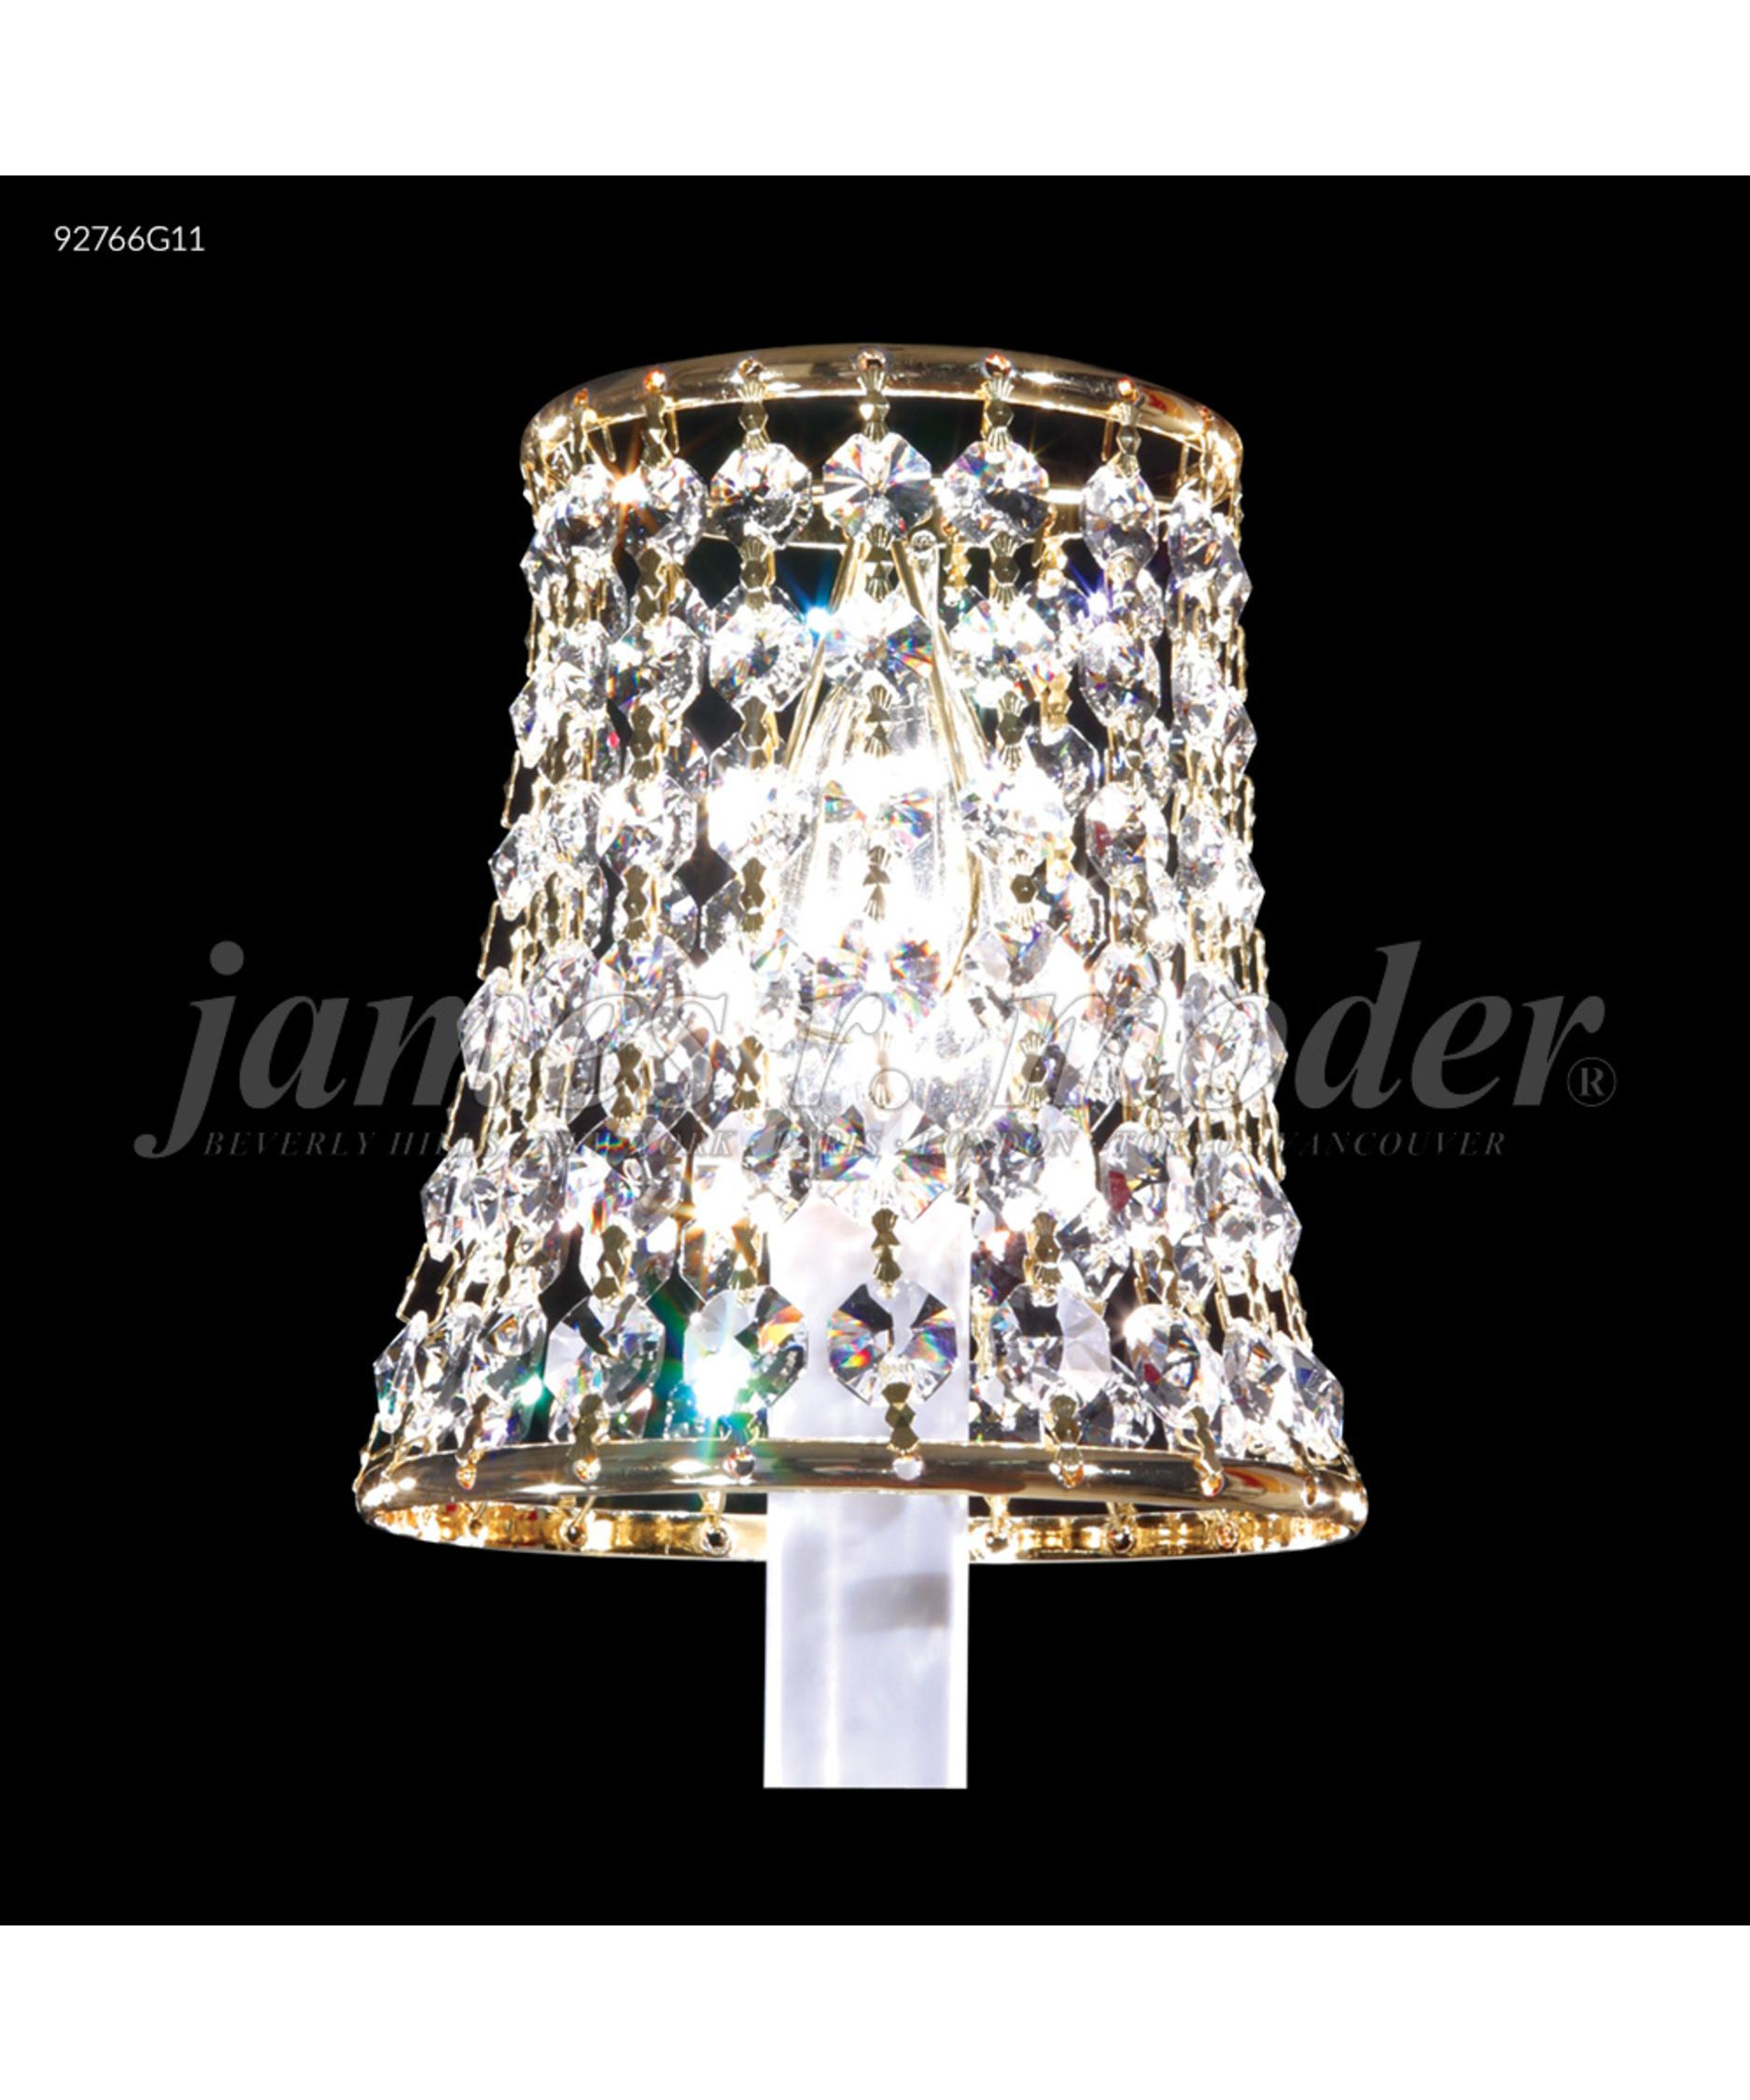 Mini lamp shades -  Shades Lacquered Design Astonish Chandelier Lamp Shown In Royal Gold Finish And Spectra Swarovski Crystal